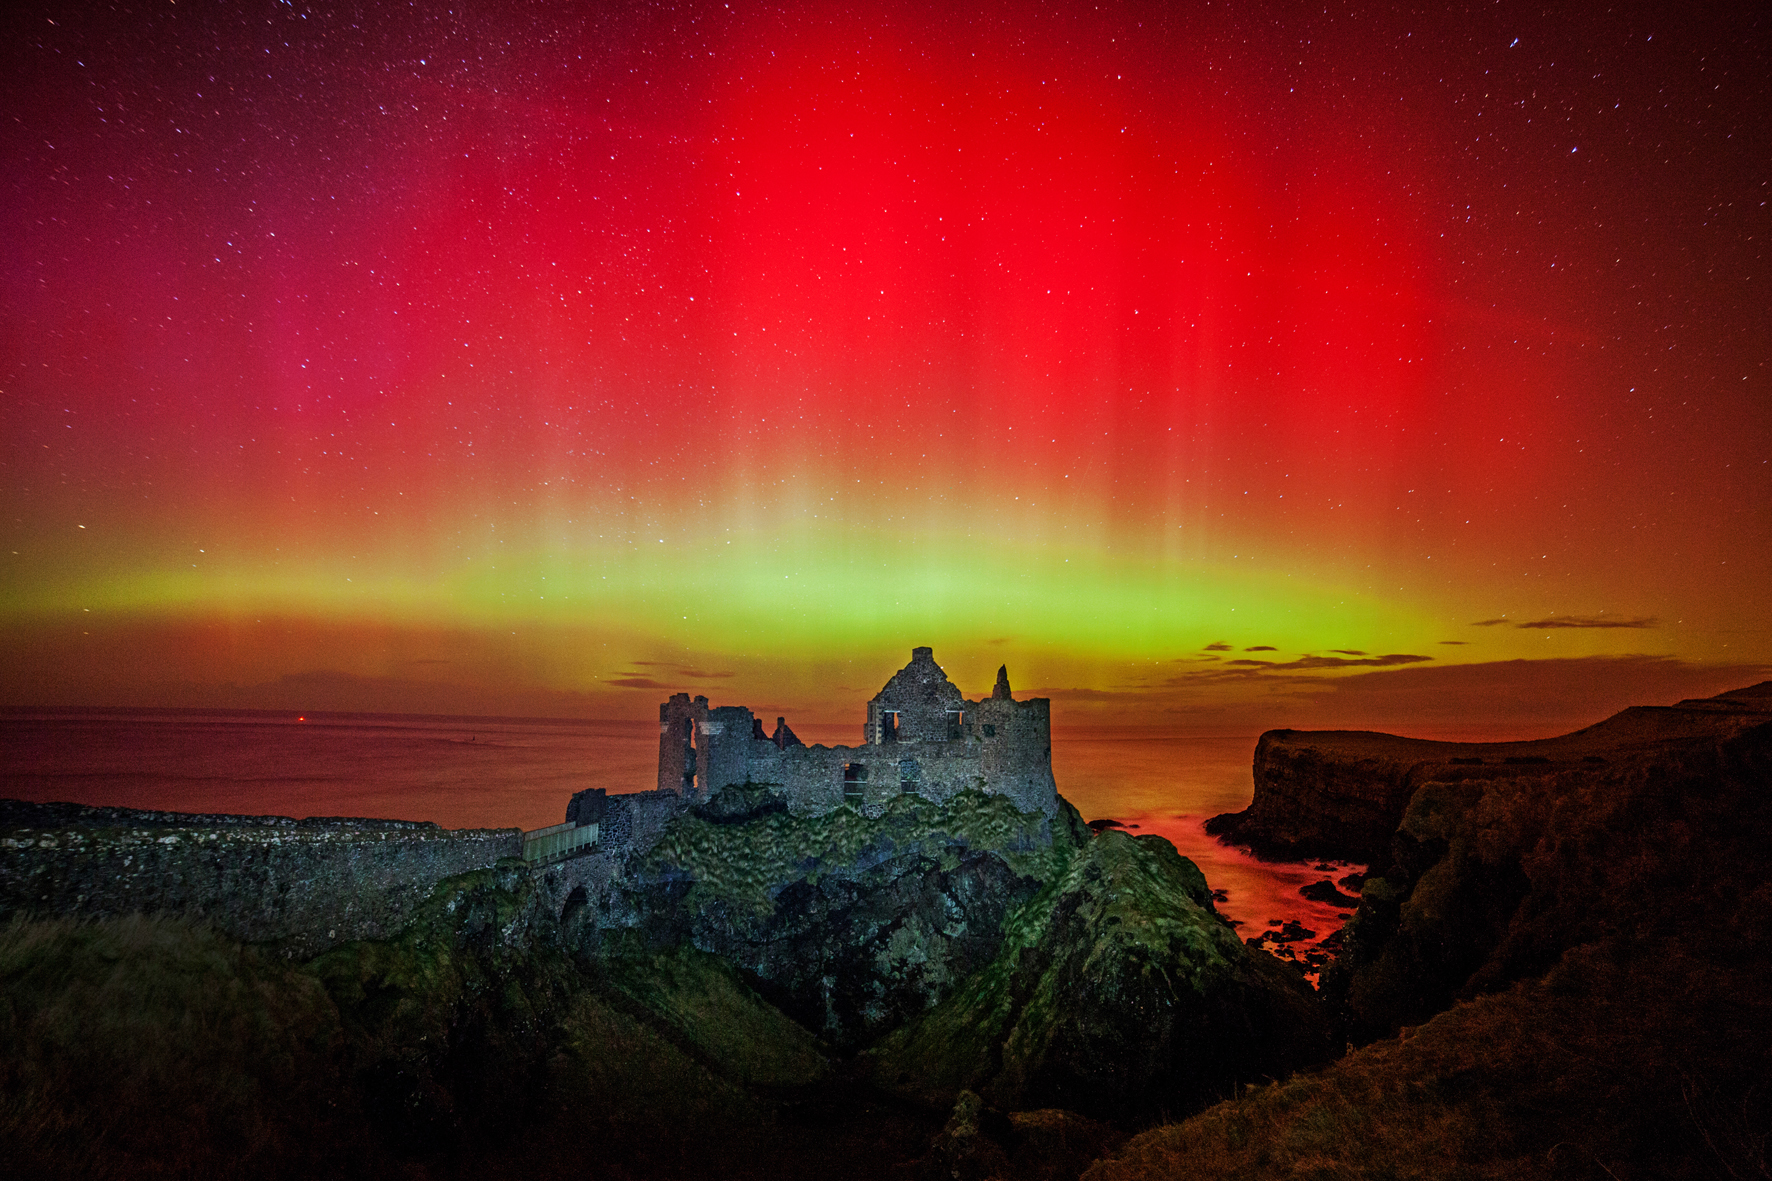 'Spectacular' Astronomy Photographer of the Year pics revealed